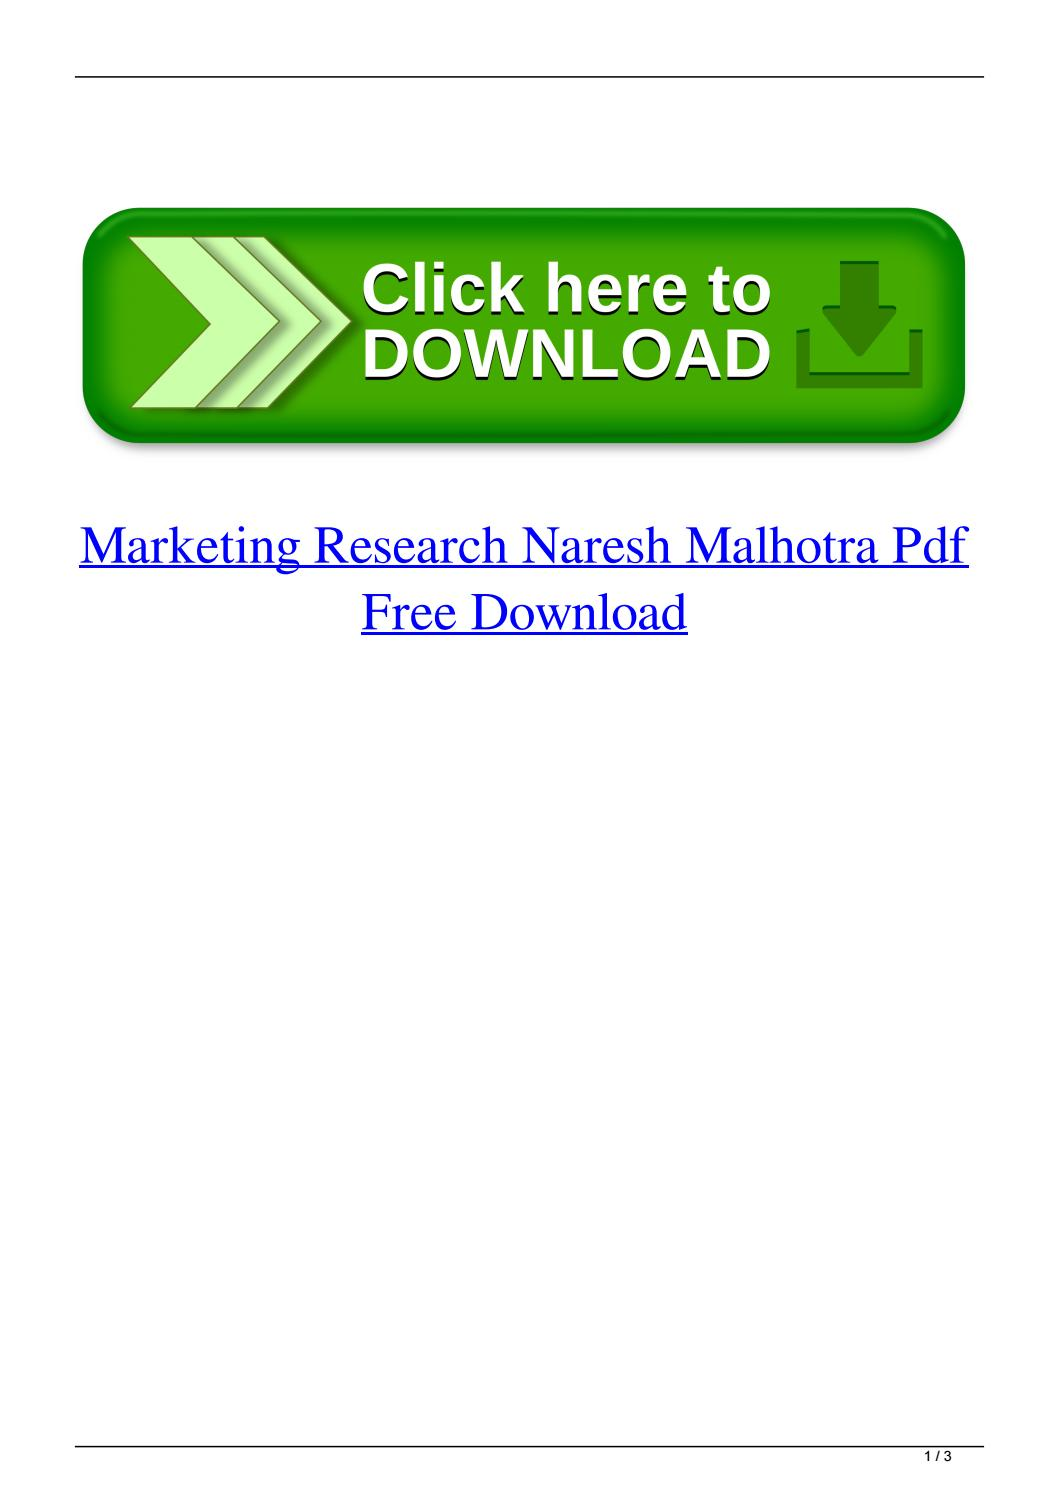 011 Research Paper Page 1 Marketing Papers Pdf Free Impressive Download Full